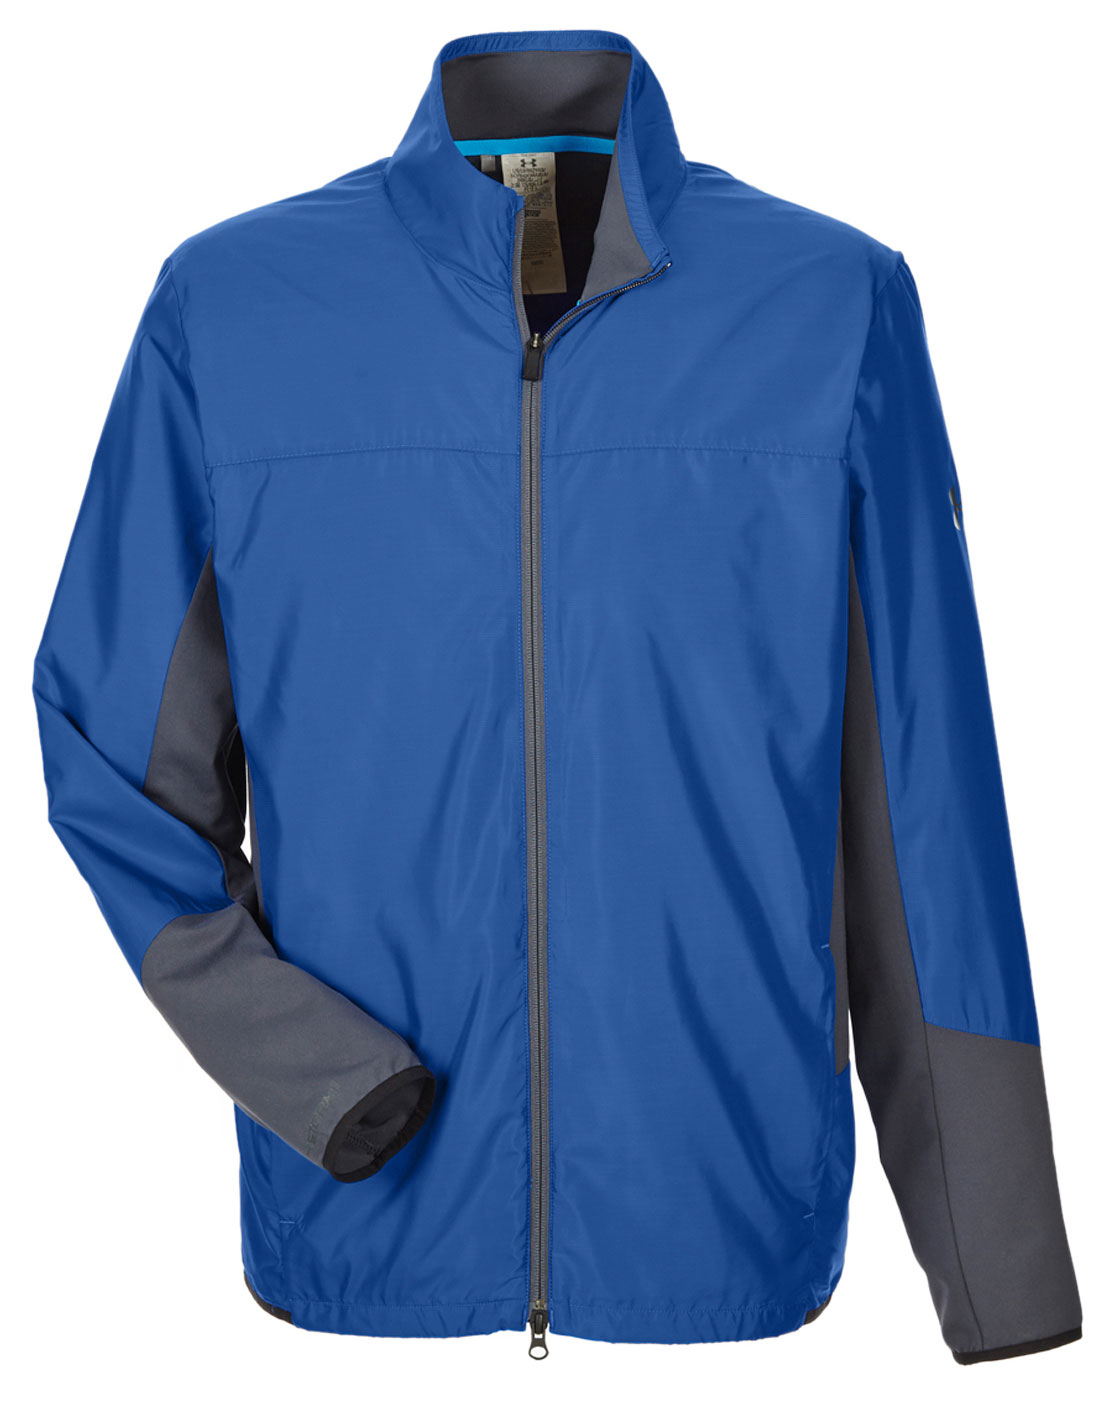 Mens Under Armour Groove Hybrid Jacket